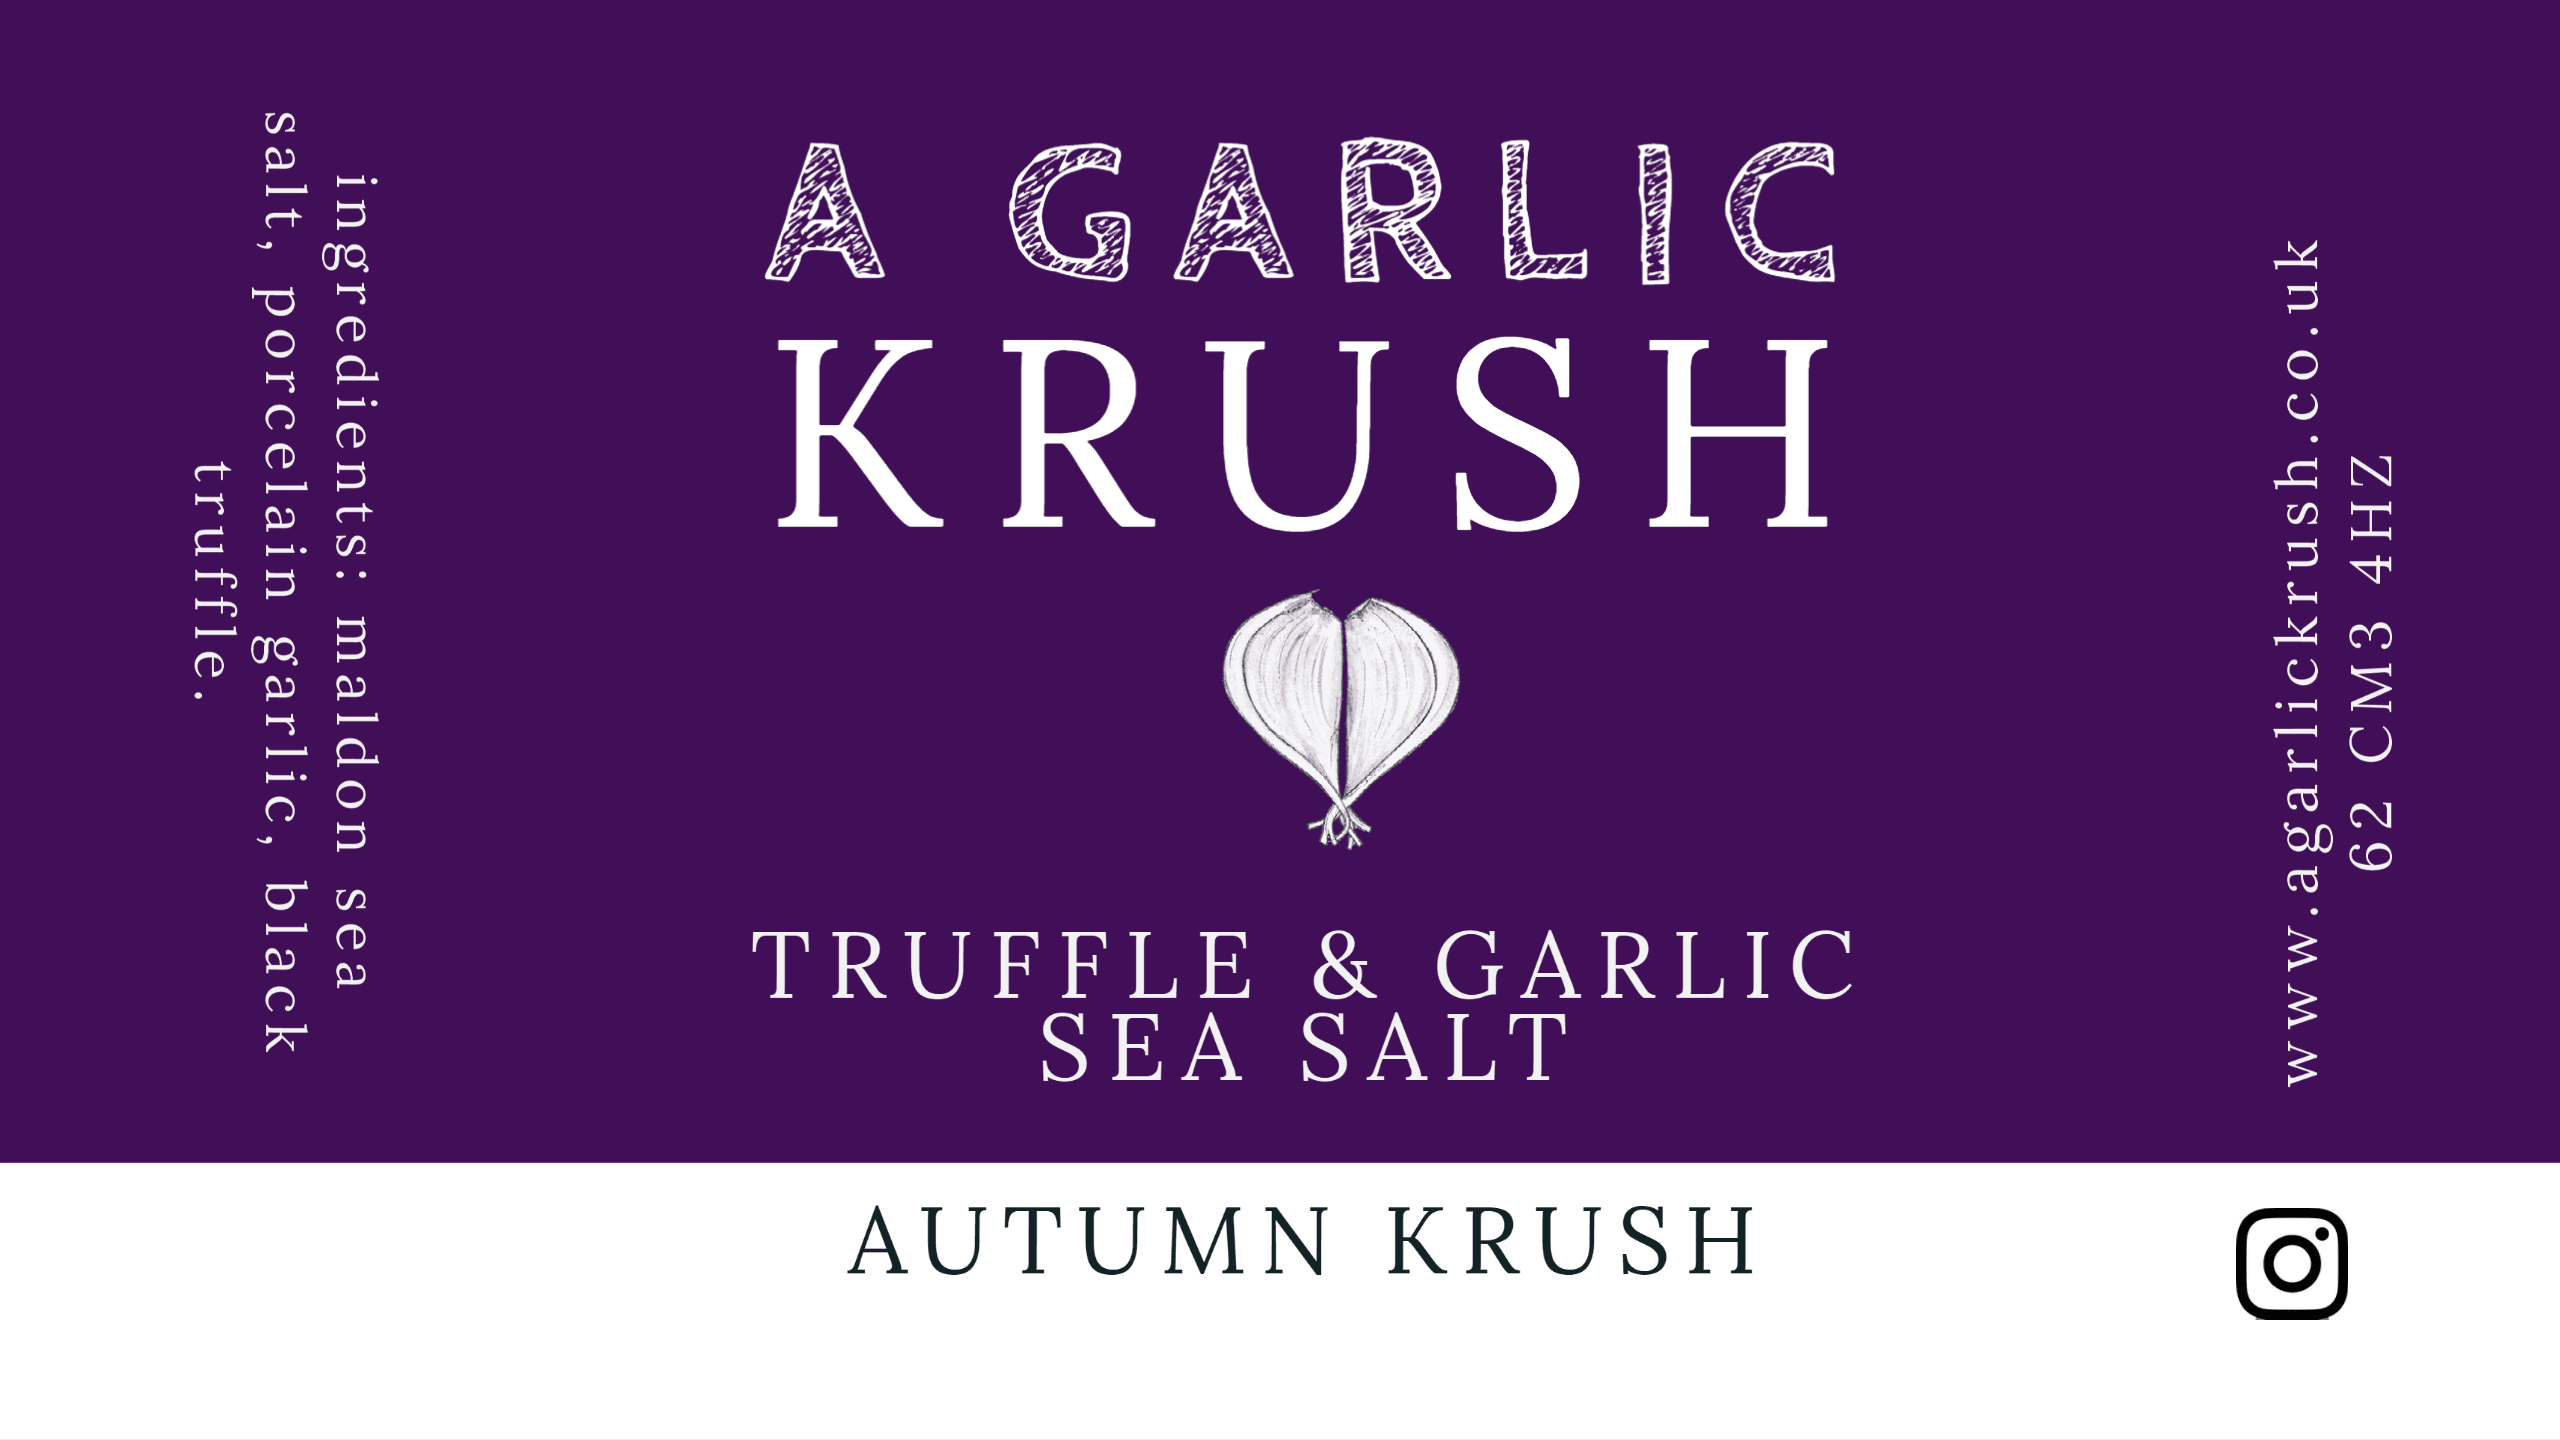 Autumn Krush. Black truffle, garlic and sea salt